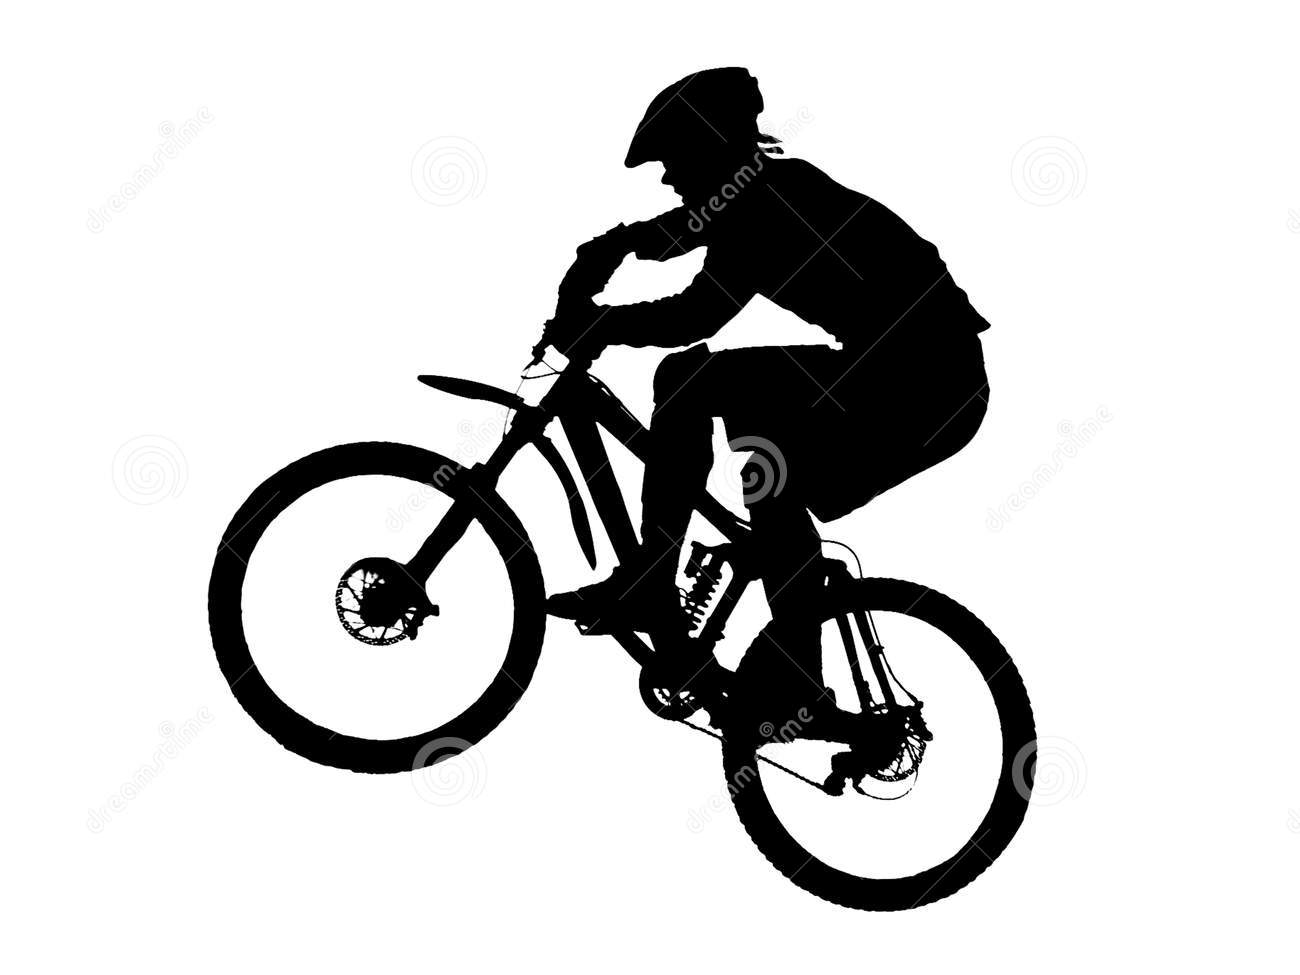 12 Mountain Biking Silhouette Vector Images.